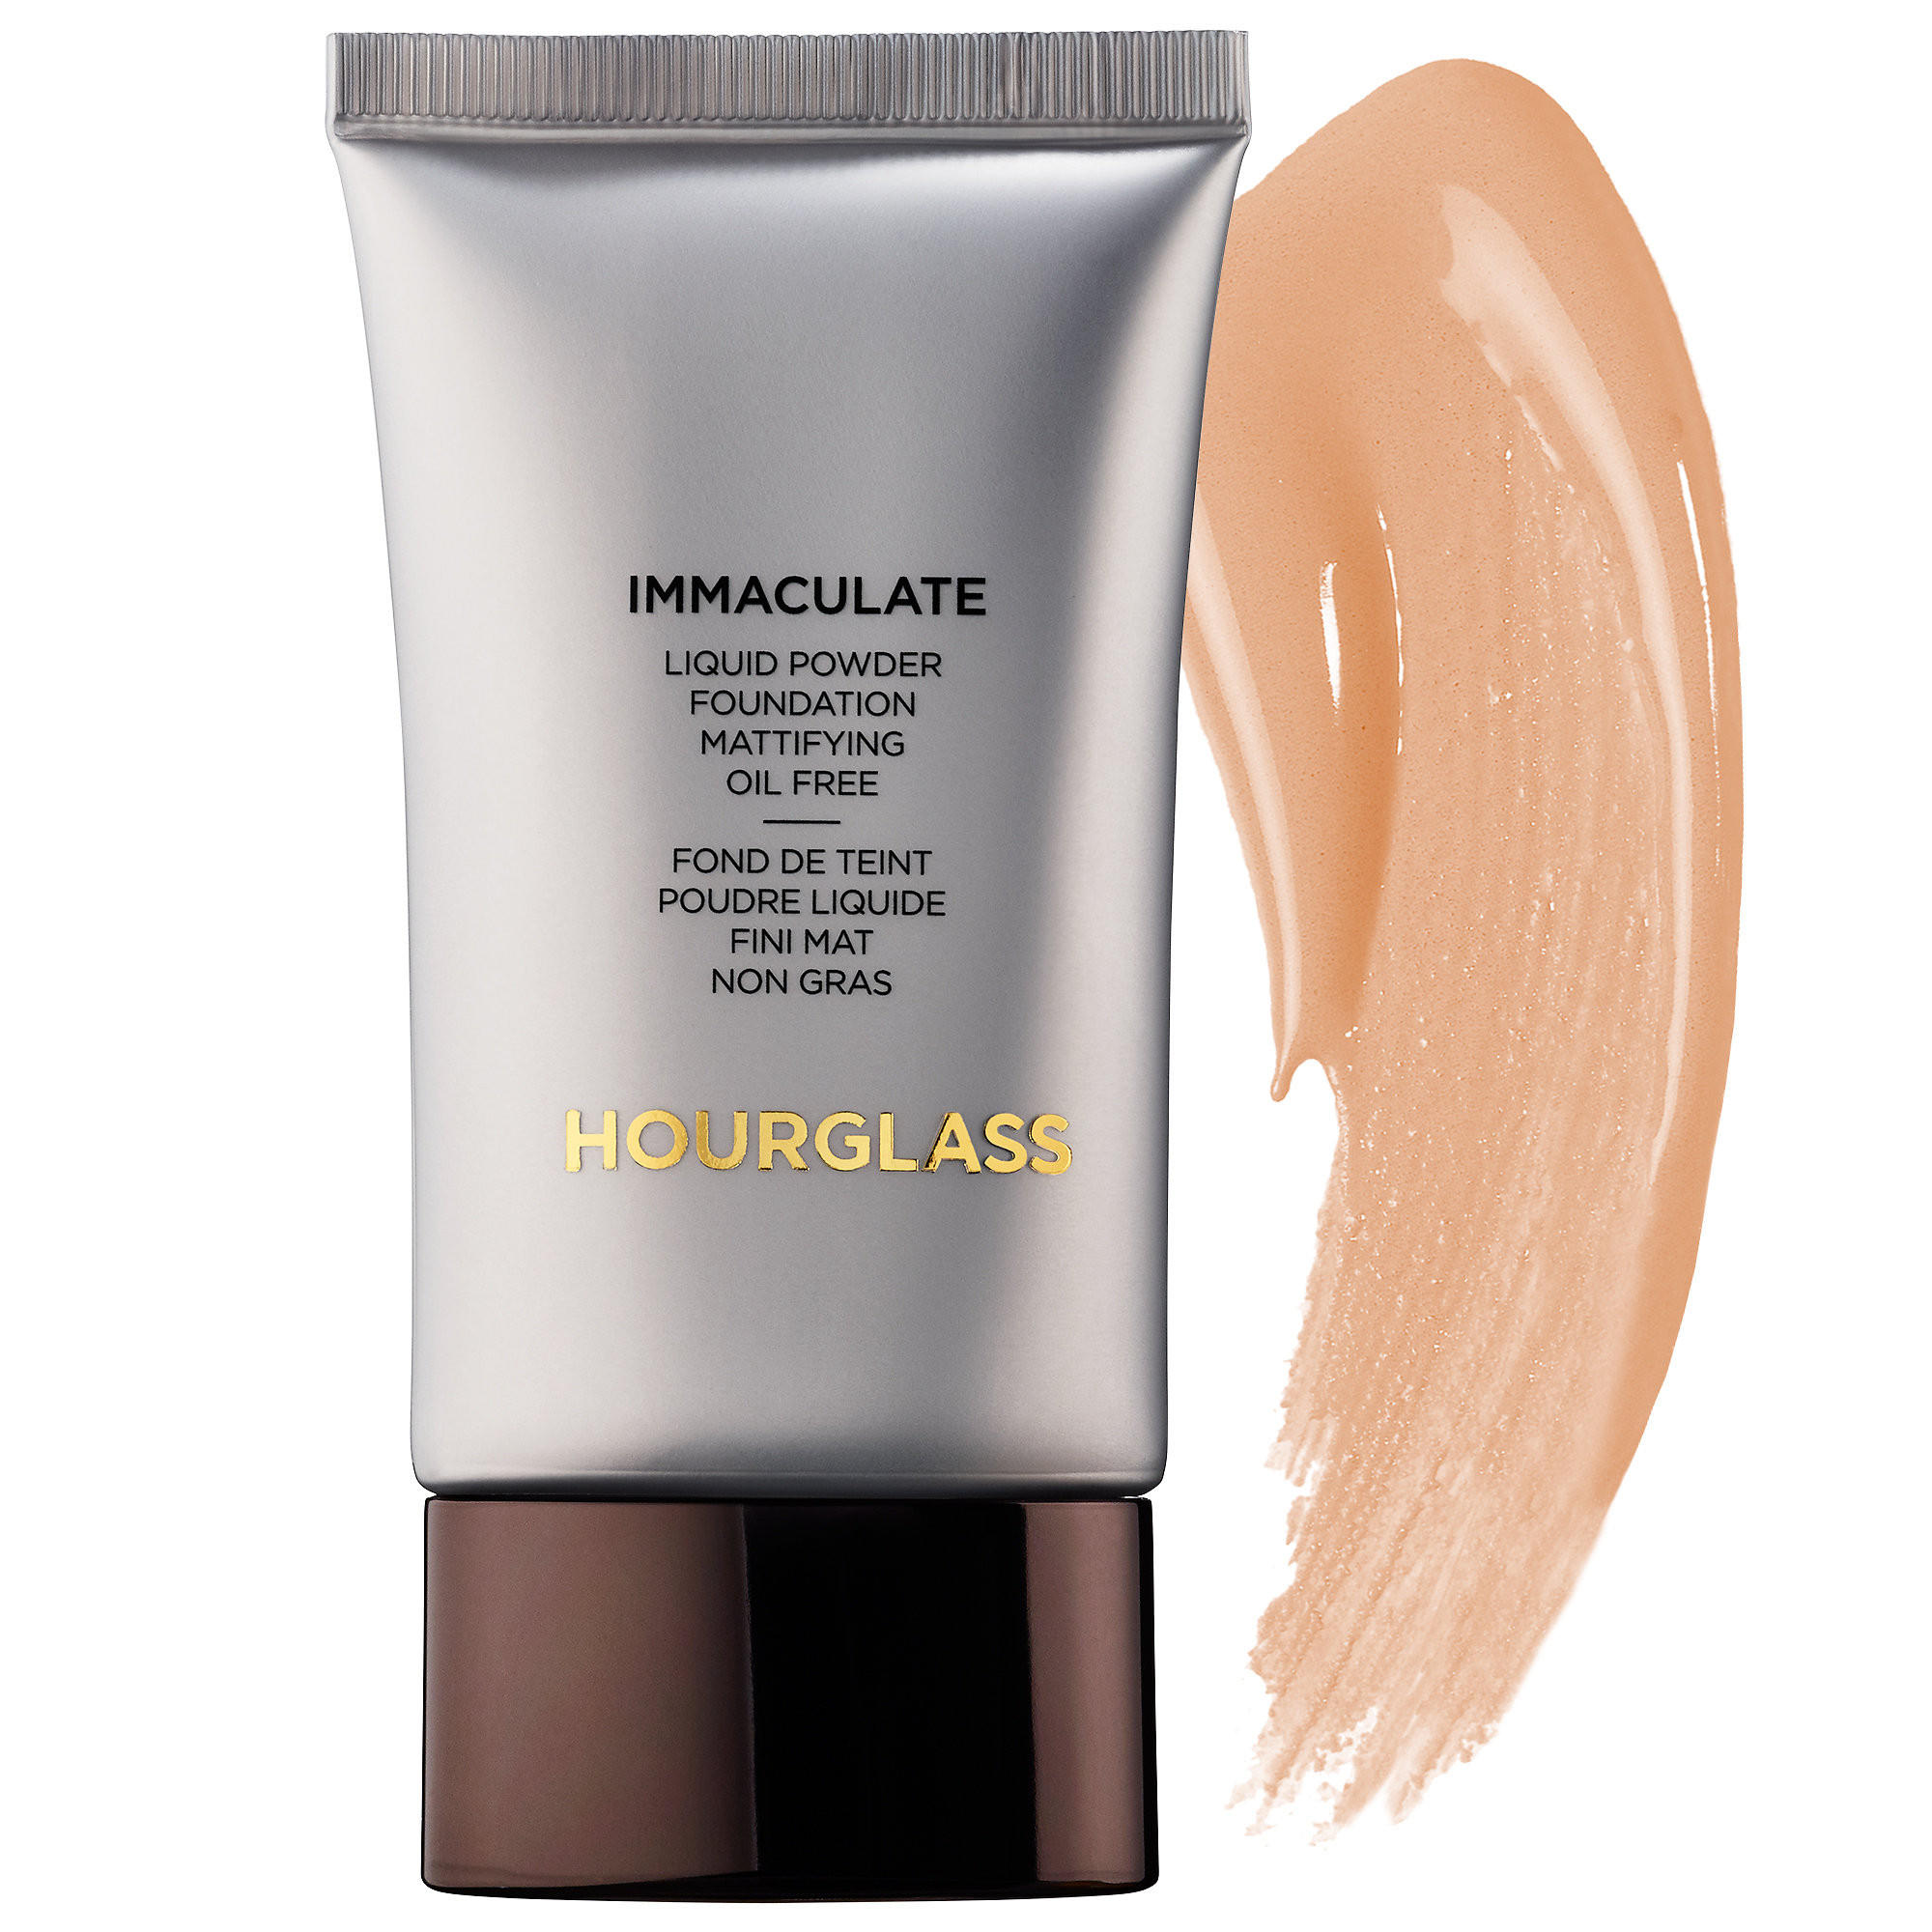 Hourglass Immaculate Liquid Powder Foundation Oil-Free Nude